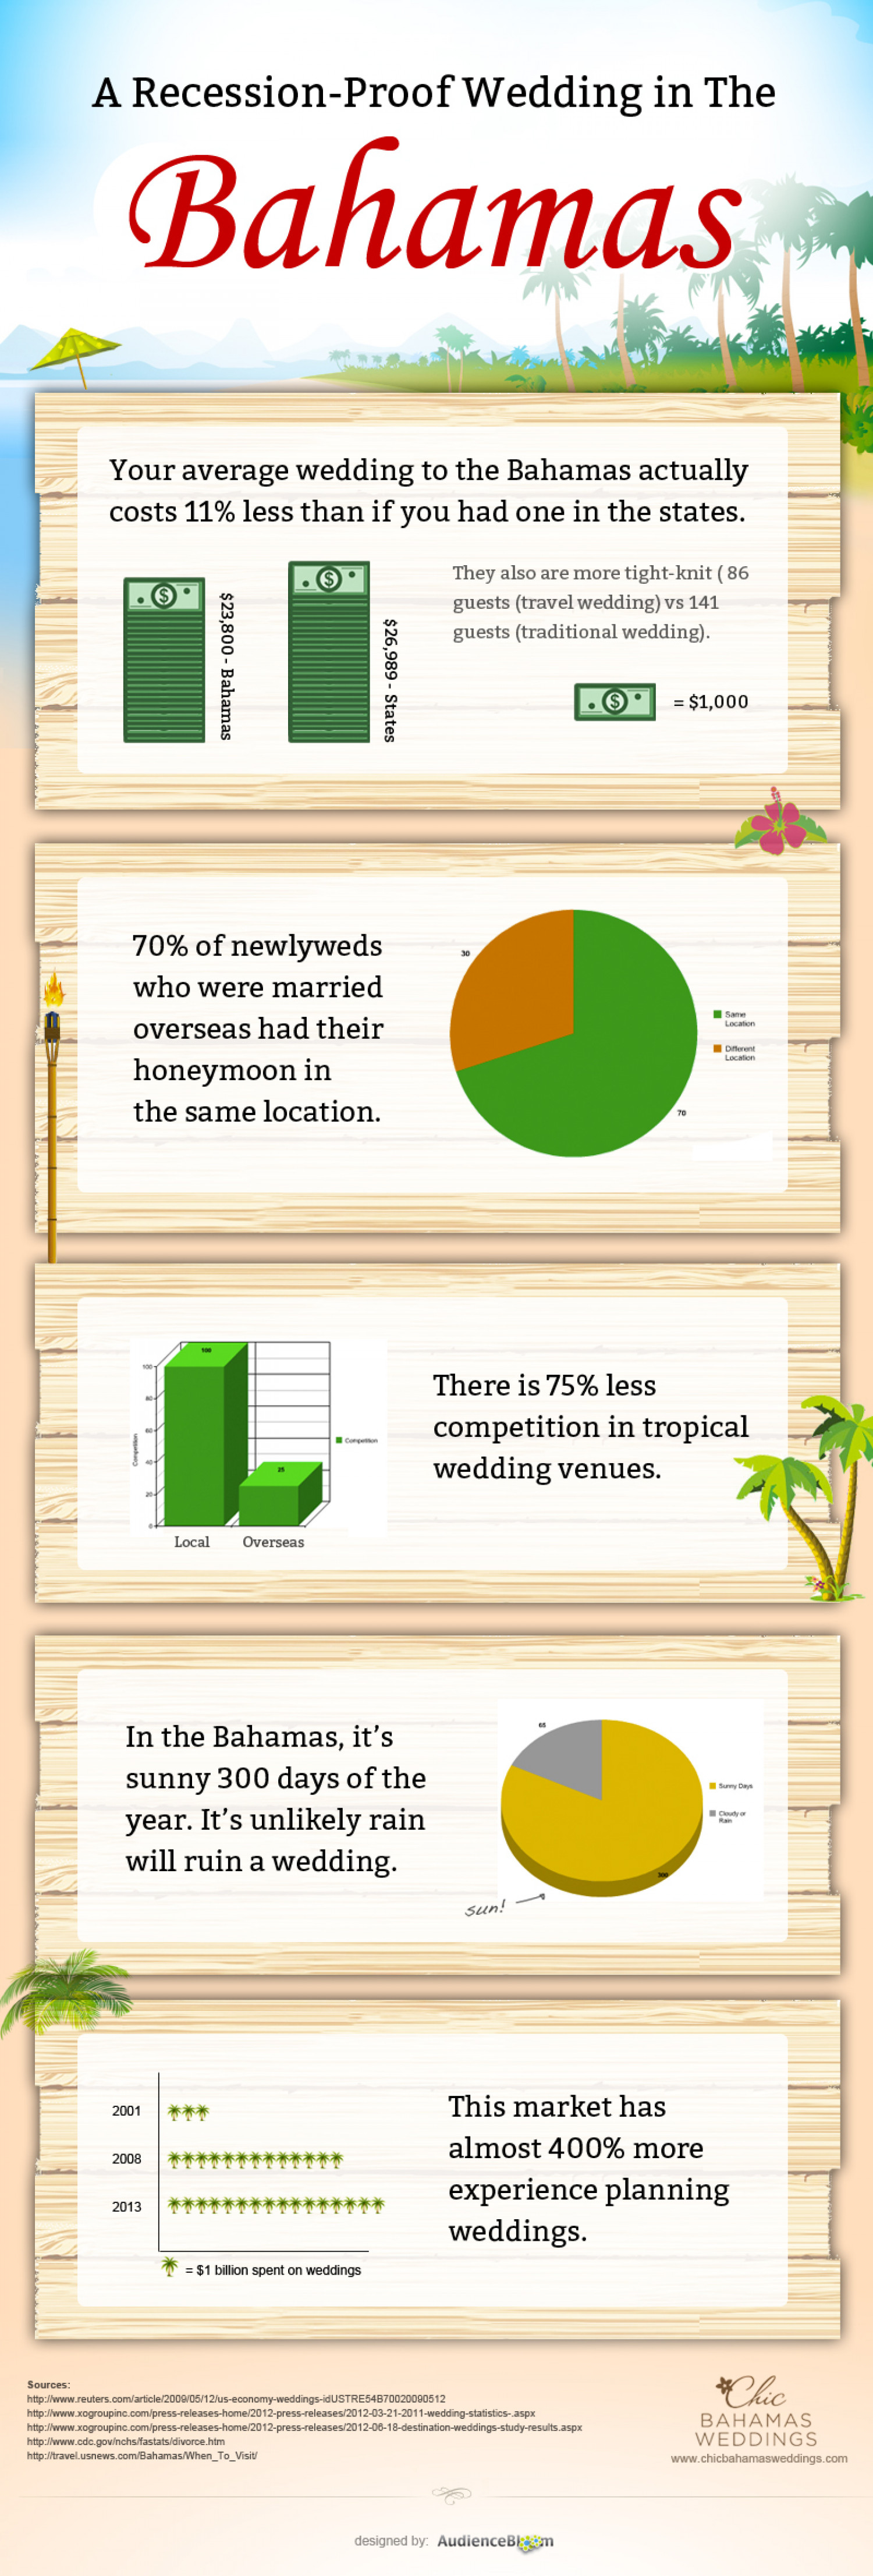 A Recession Proof Wedding in The Bahamas Infographic